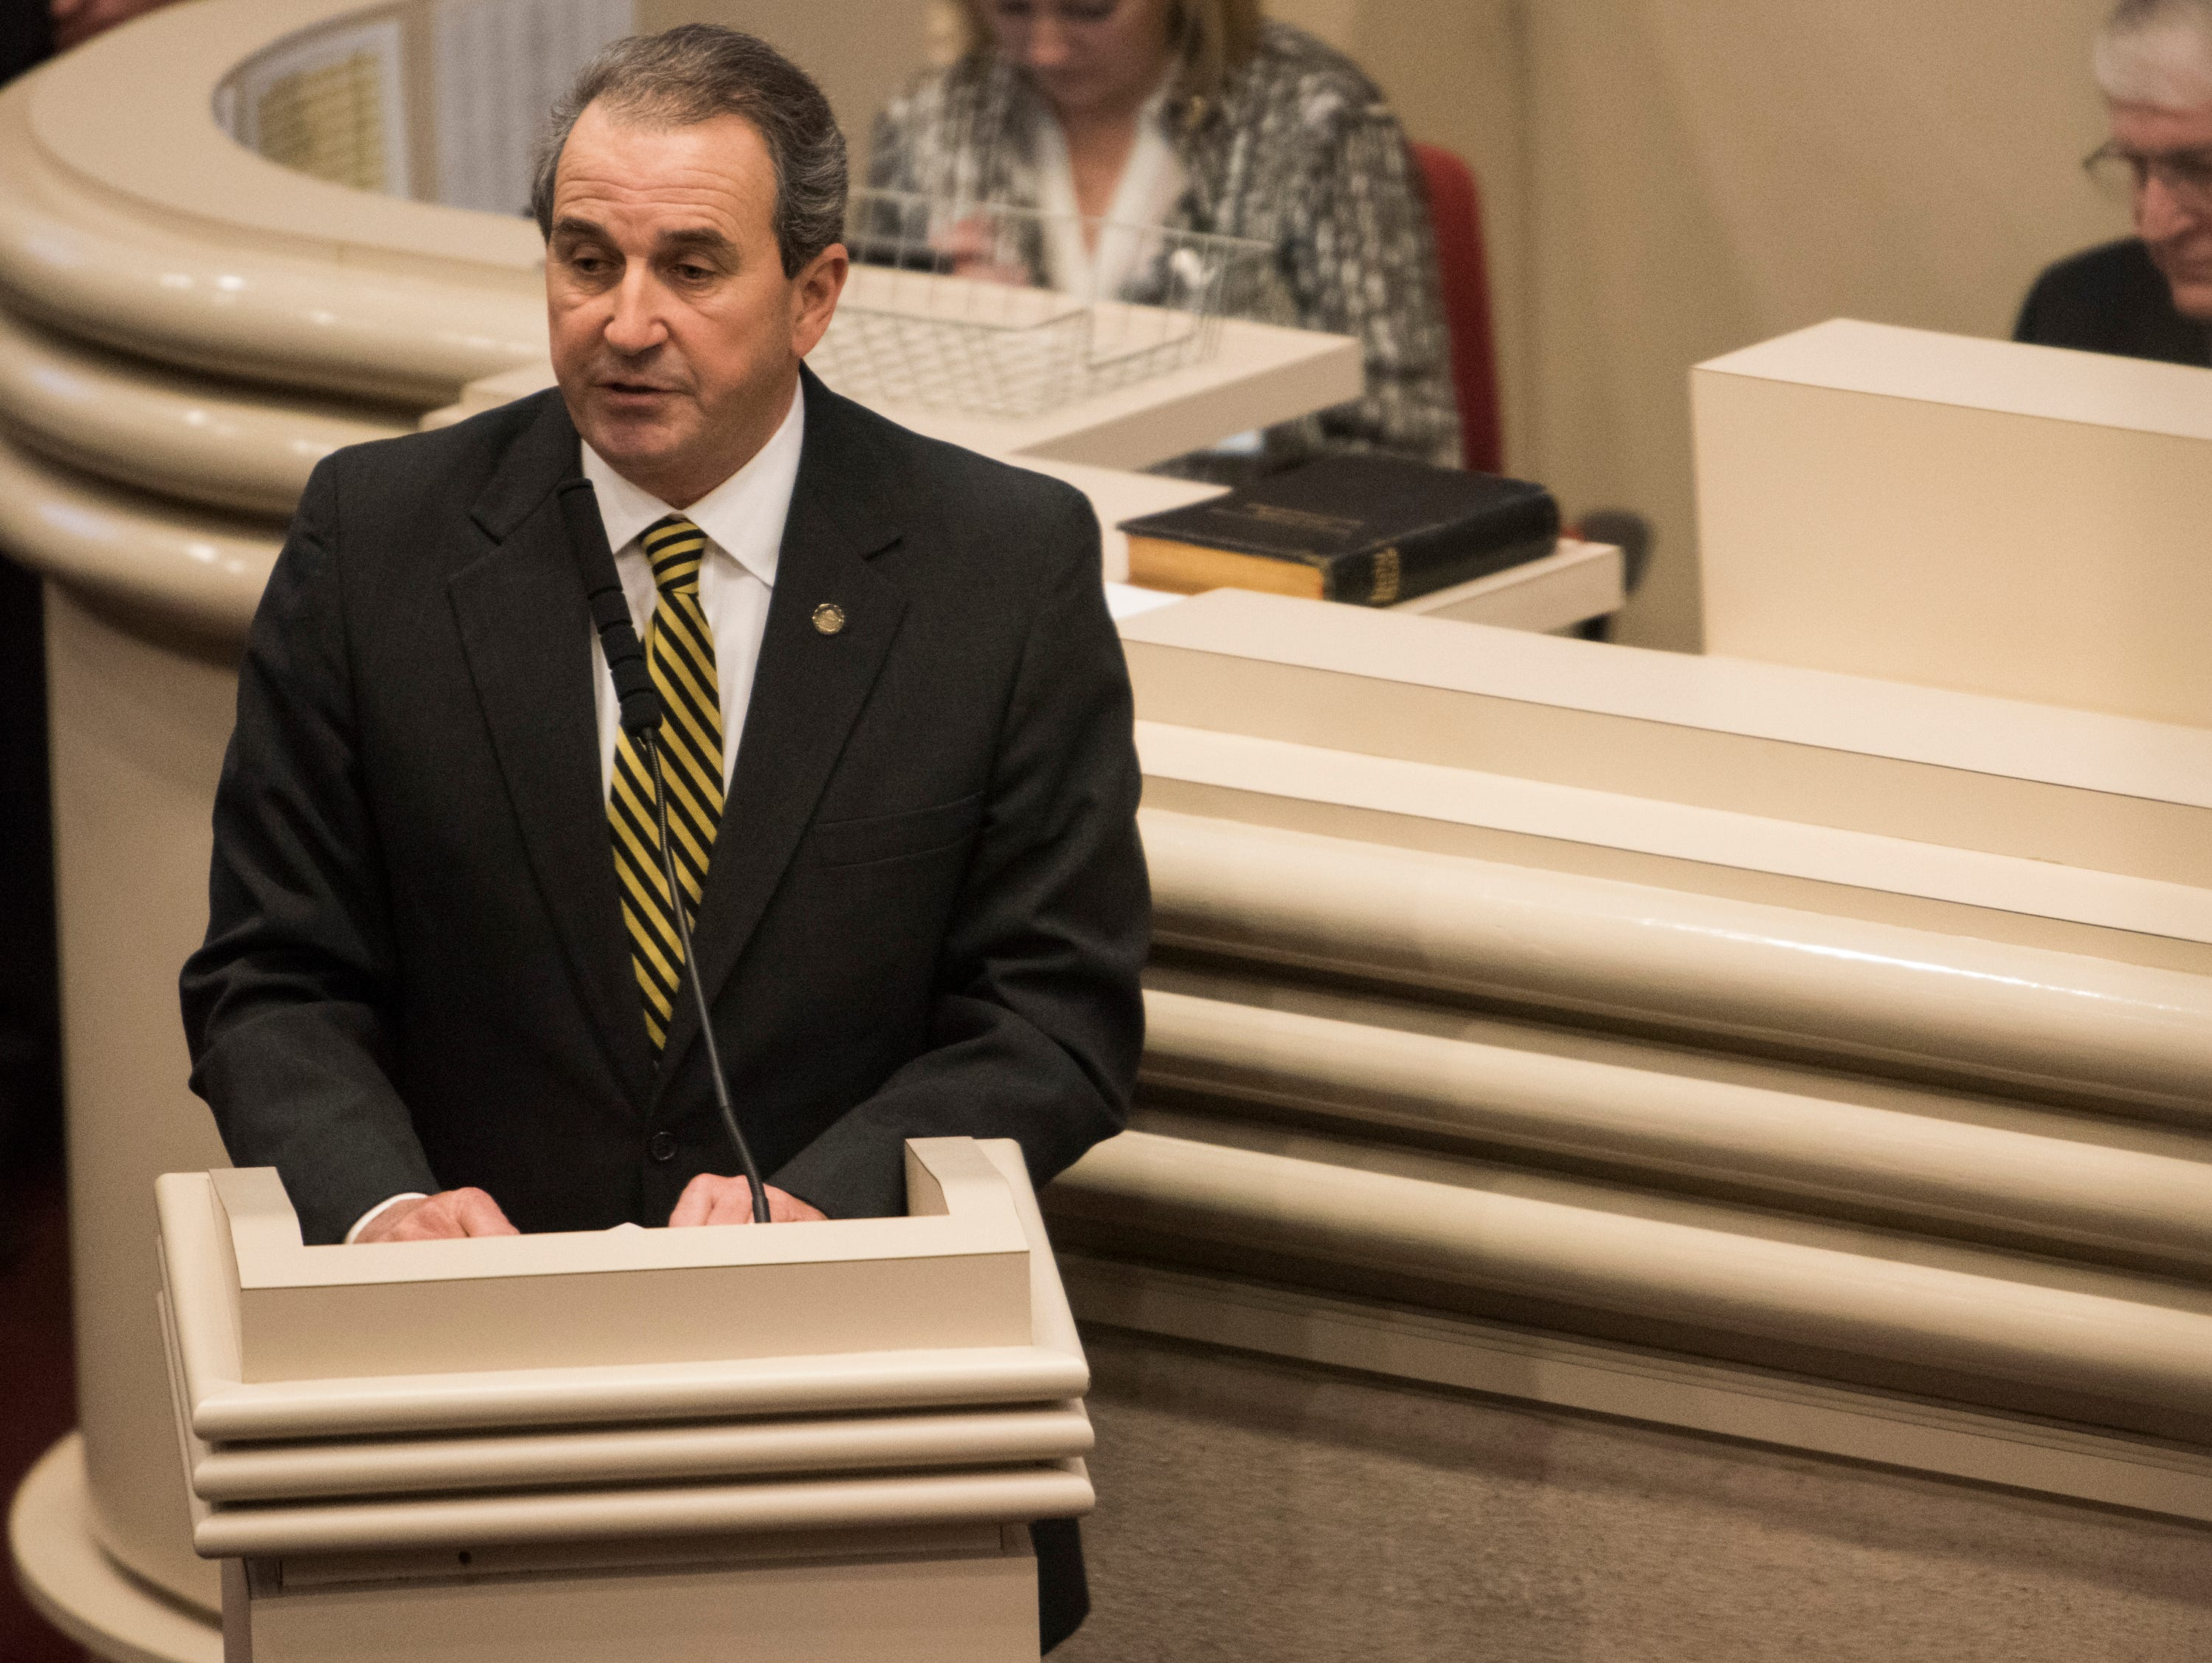 Rep. Steve Clouse during the 2019 Alabama Legislature's organizational session at the Alabama State House in Montgomery, Ala., on Tuesday, Jan. 8, 2019.